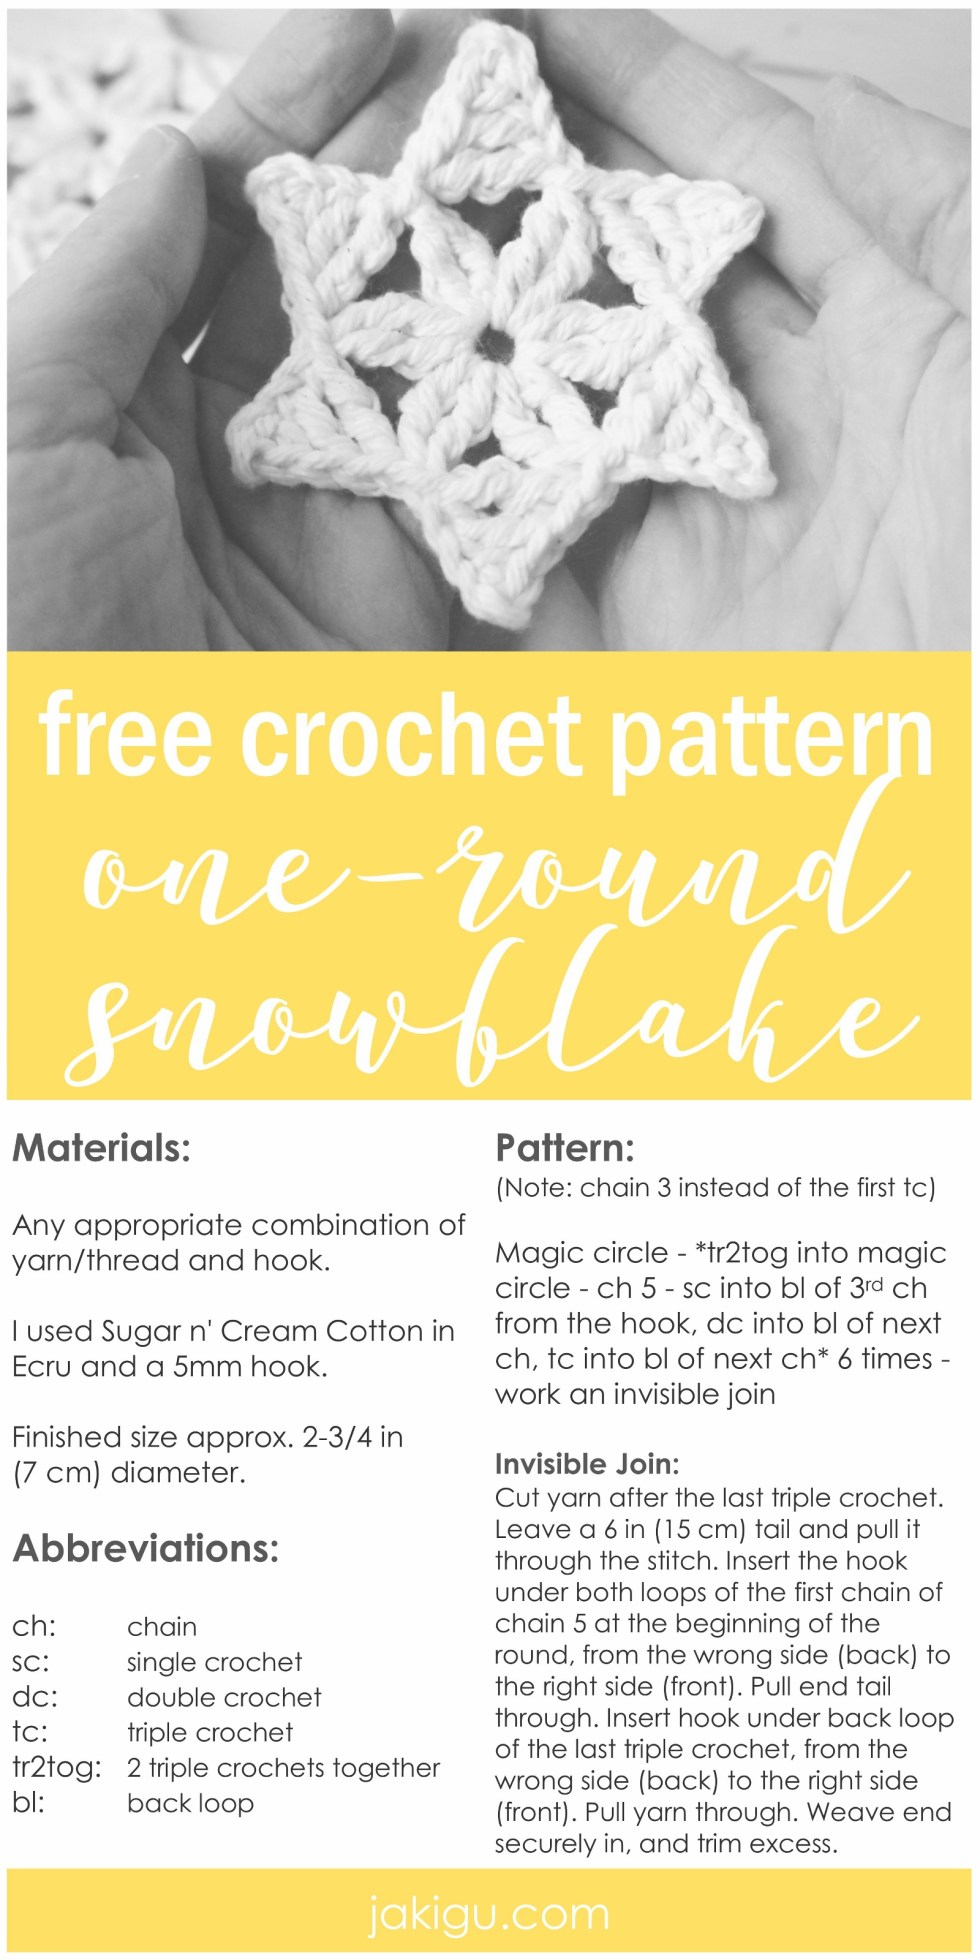 One-round crochet snowflake. Quick and easy holiday decor project. Ornaments, garlands, gift tags!